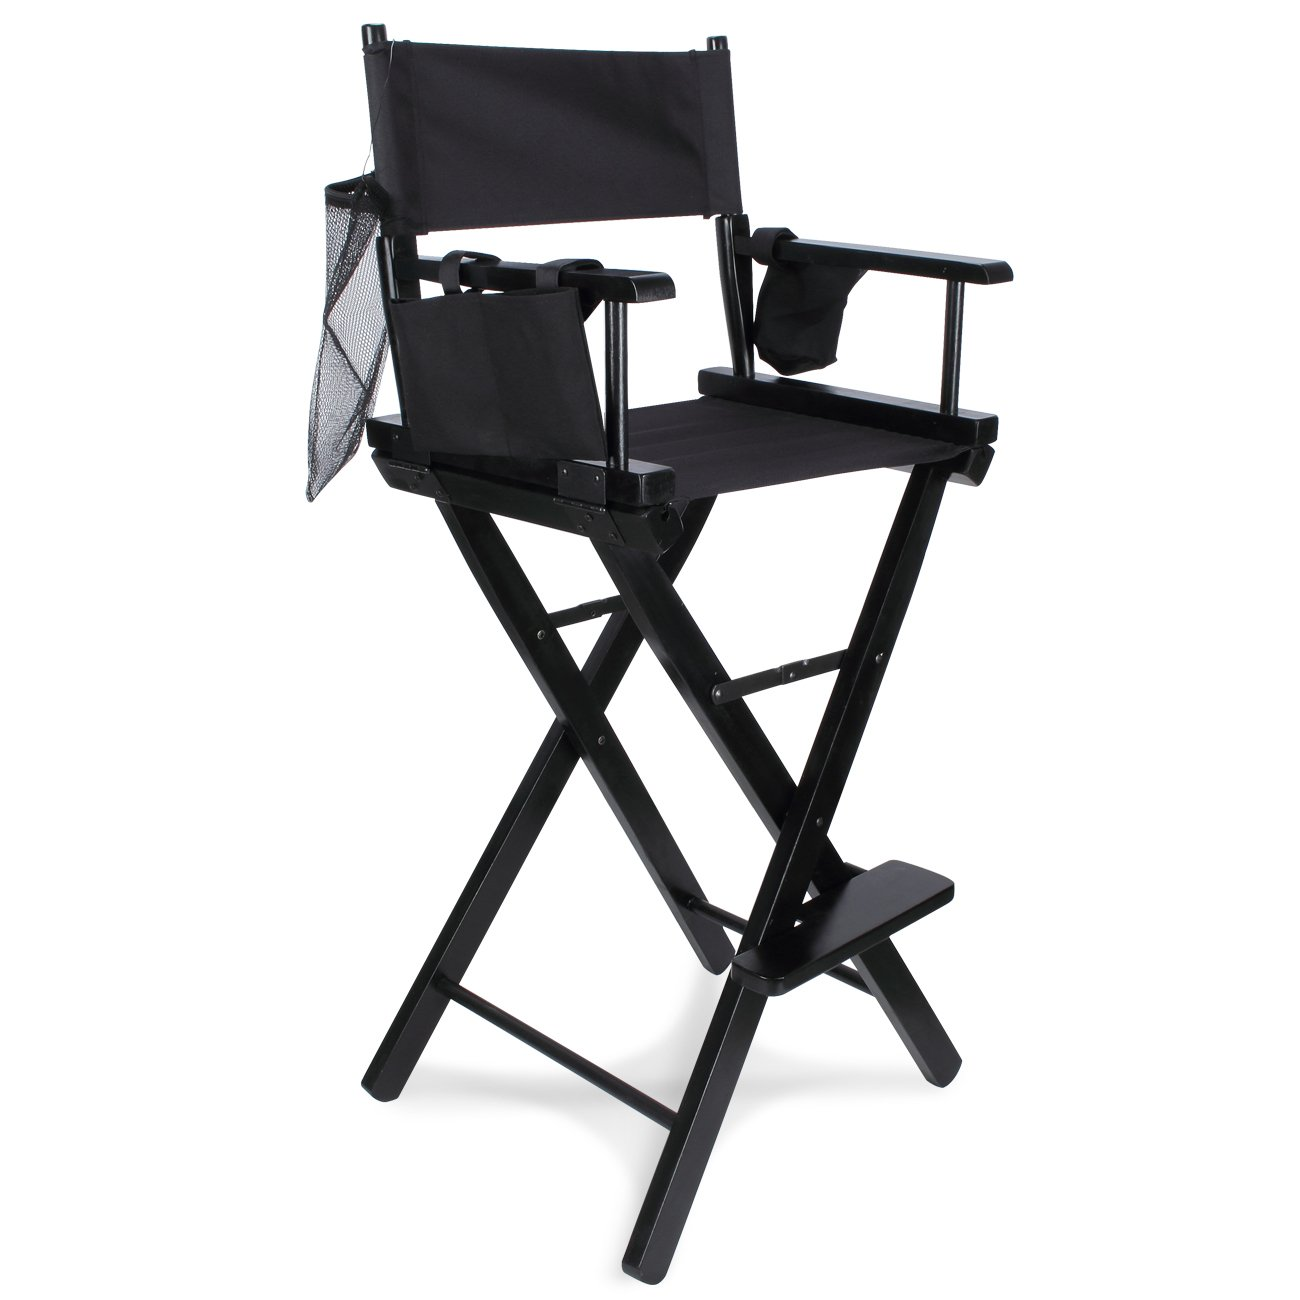 Bellavie Professional 30'' Extra-Wide Portable Makeup Artist/Director Chair with Cup Holder, Storage Bag, Black by Bellavie